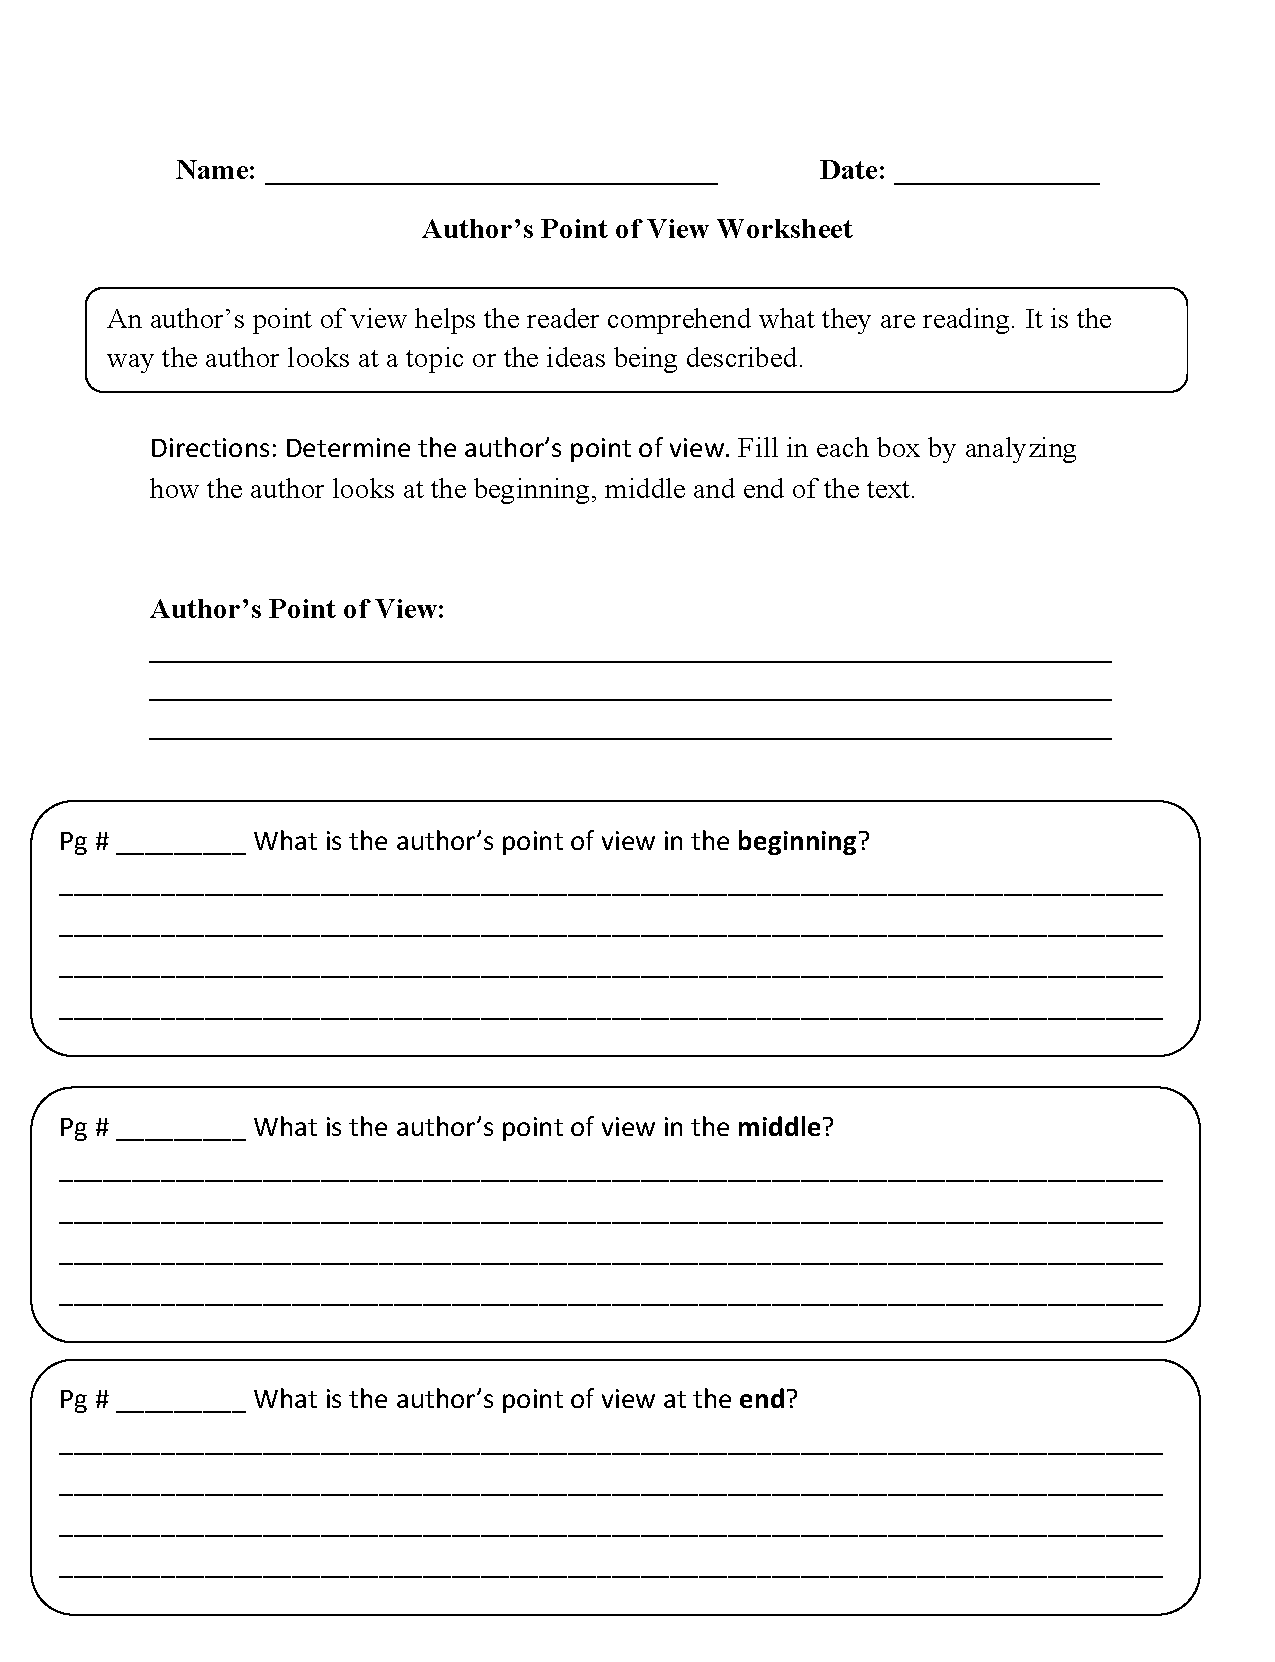 Weirdmailus  Pleasant Englishlinxcom  Point Of View Worksheets With Hot Point Of View Worksheets With Beautiful Order Of Operations Fun Worksheet Also Second Grade Worksheets Free In Addition Free Money Counting Worksheets And Prentice Hall Biology Worksheet Answers As Well As Two Step Linear Equations Worksheet Additionally Number Counting Worksheets From Englishlinxcom With Weirdmailus  Hot Englishlinxcom  Point Of View Worksheets With Beautiful Point Of View Worksheets And Pleasant Order Of Operations Fun Worksheet Also Second Grade Worksheets Free In Addition Free Money Counting Worksheets From Englishlinxcom